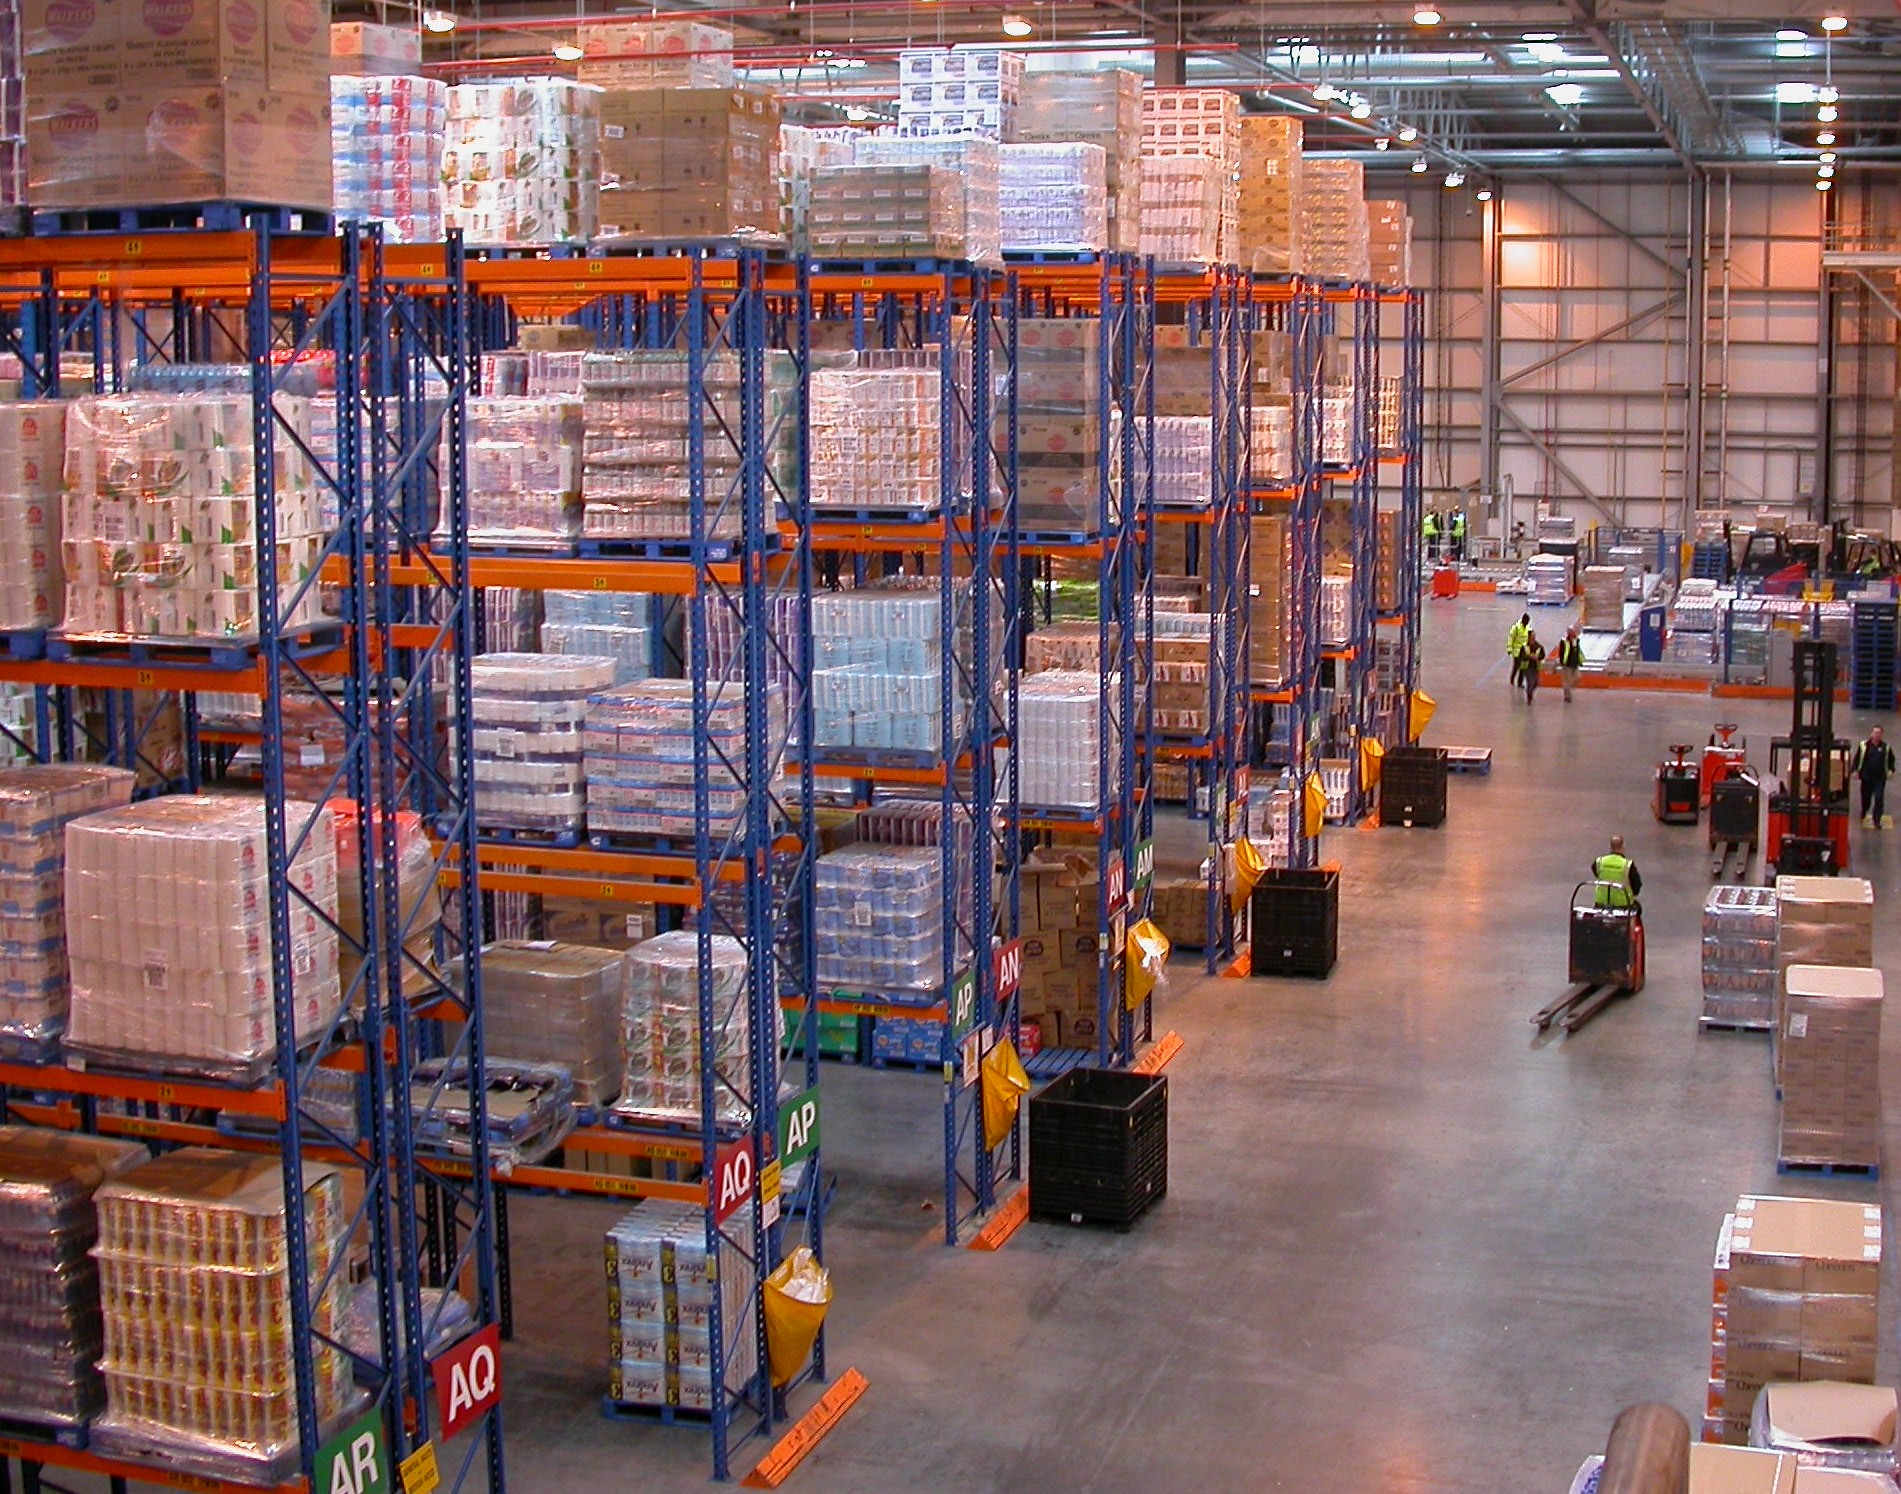 CBI: UK's labour supply problems could last up to 2 years